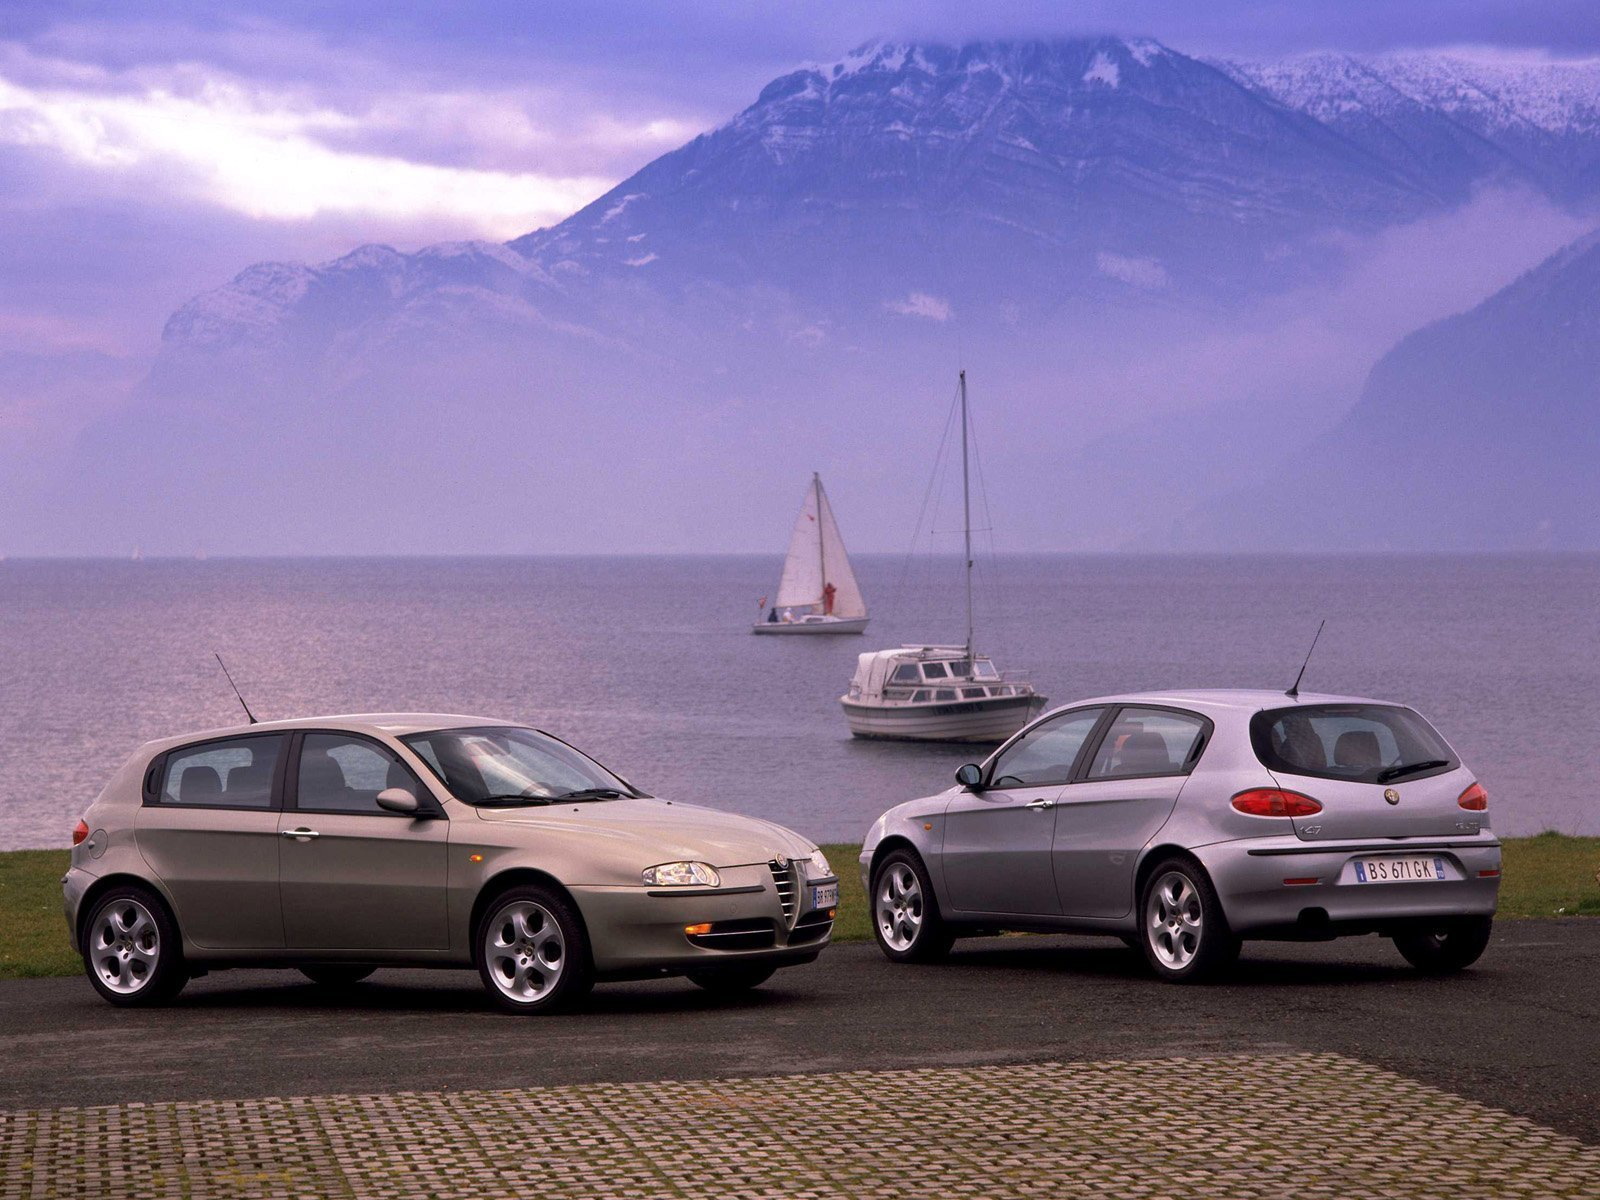 1600x1200 - Alfa Romeo 147 Wallpapers 6